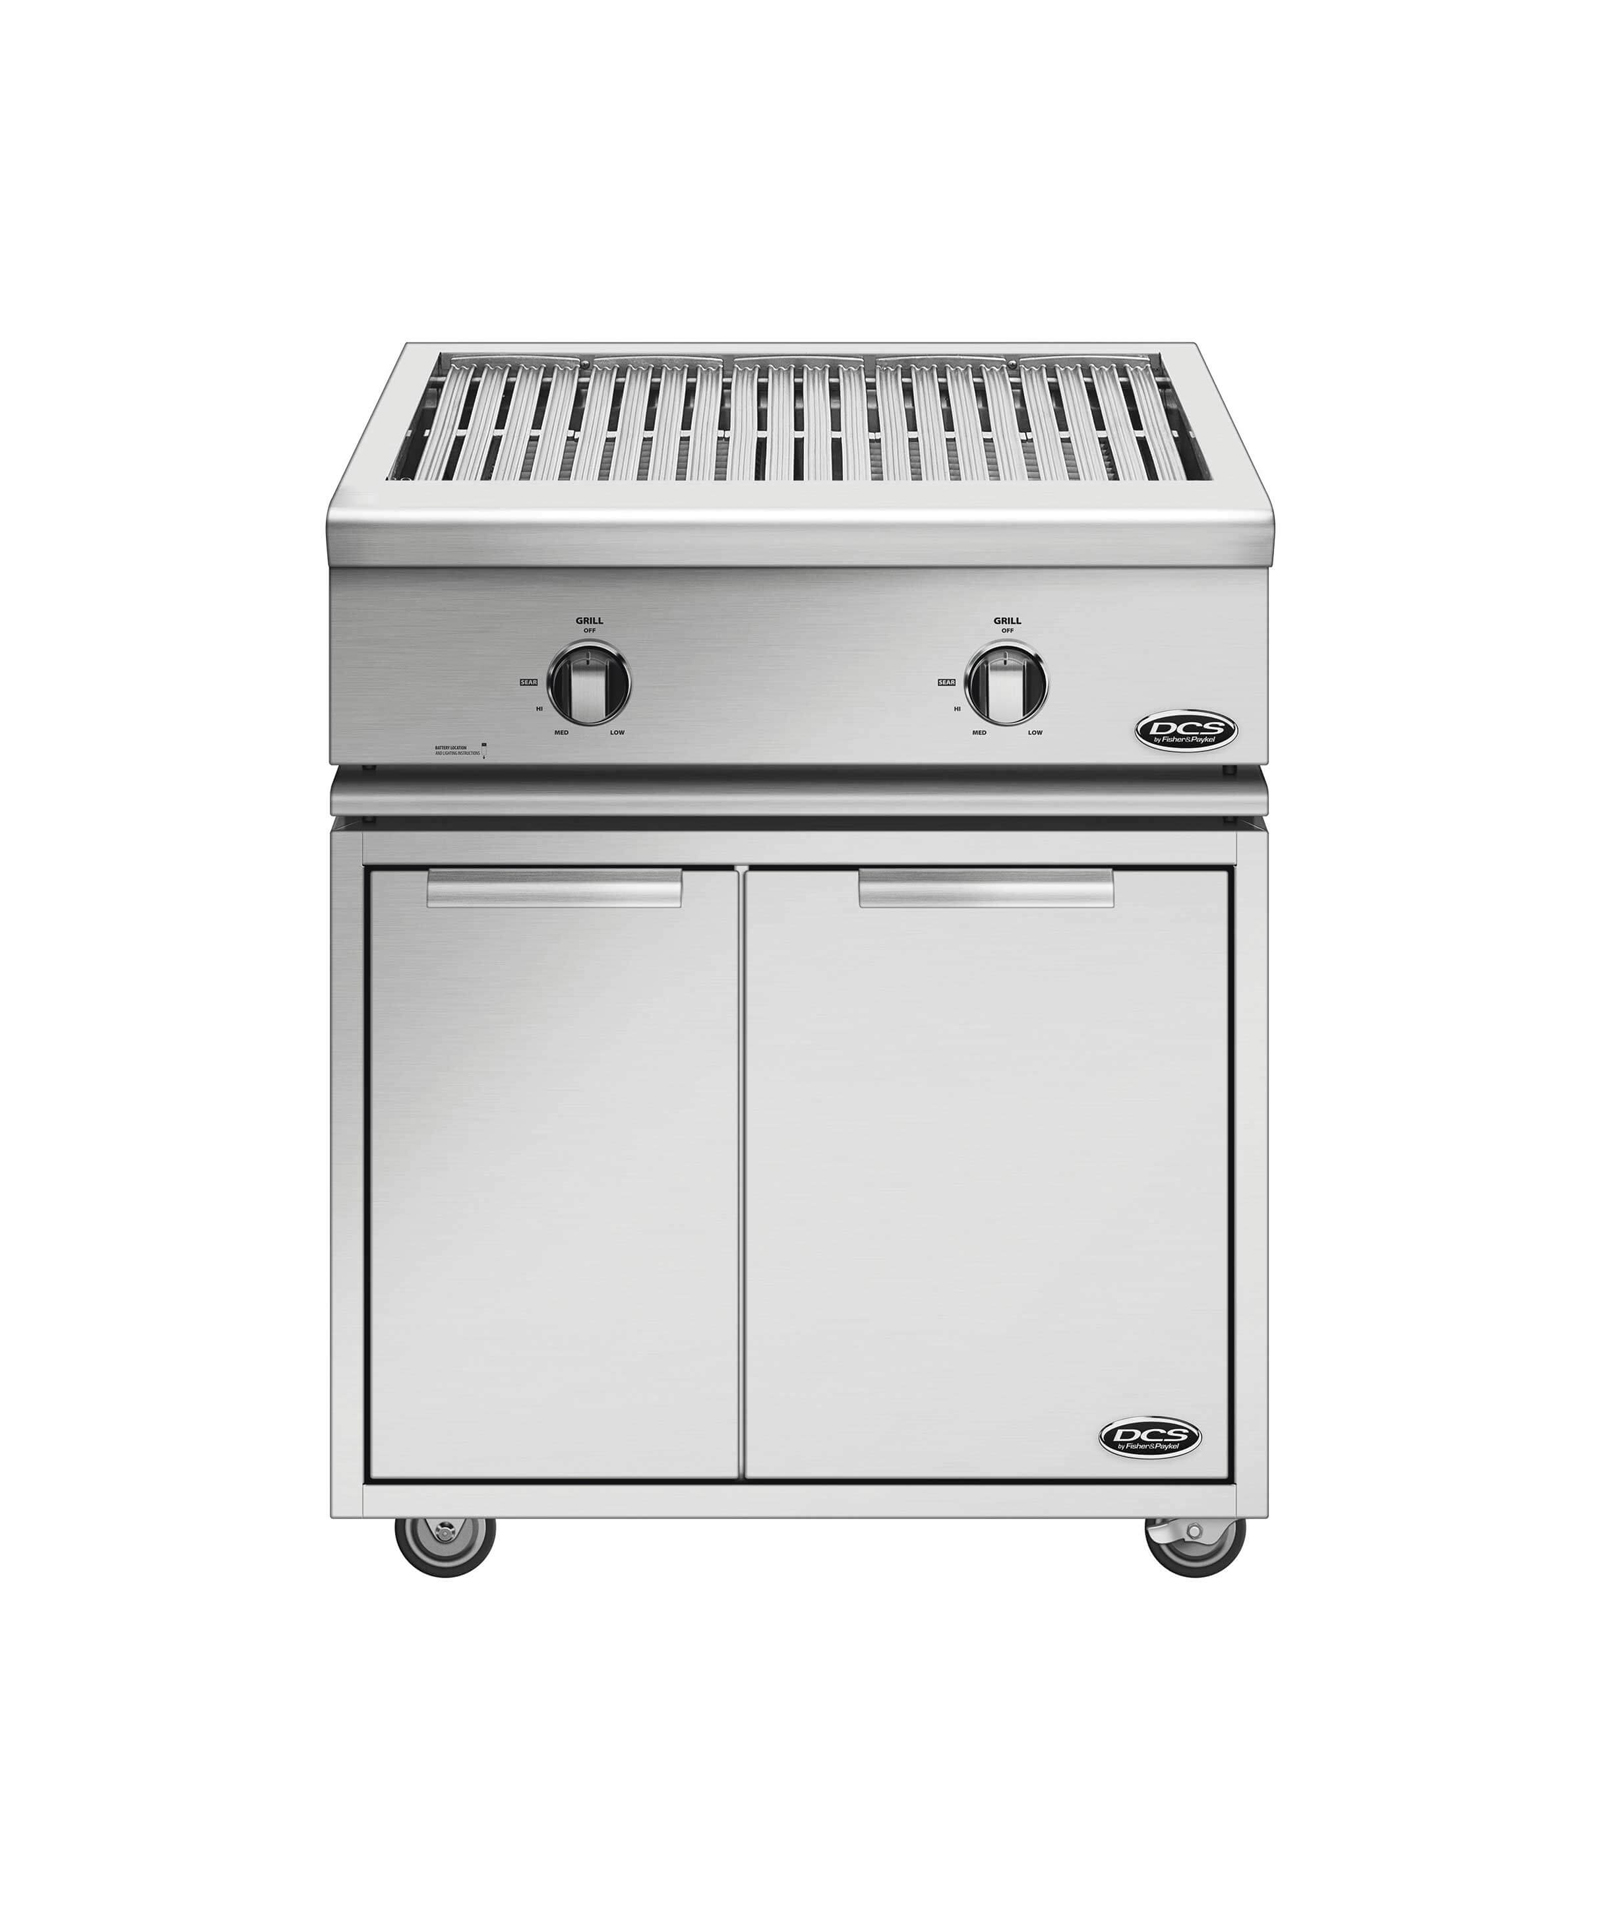 "DCS 30"" Grill, Series 7 Liberty"